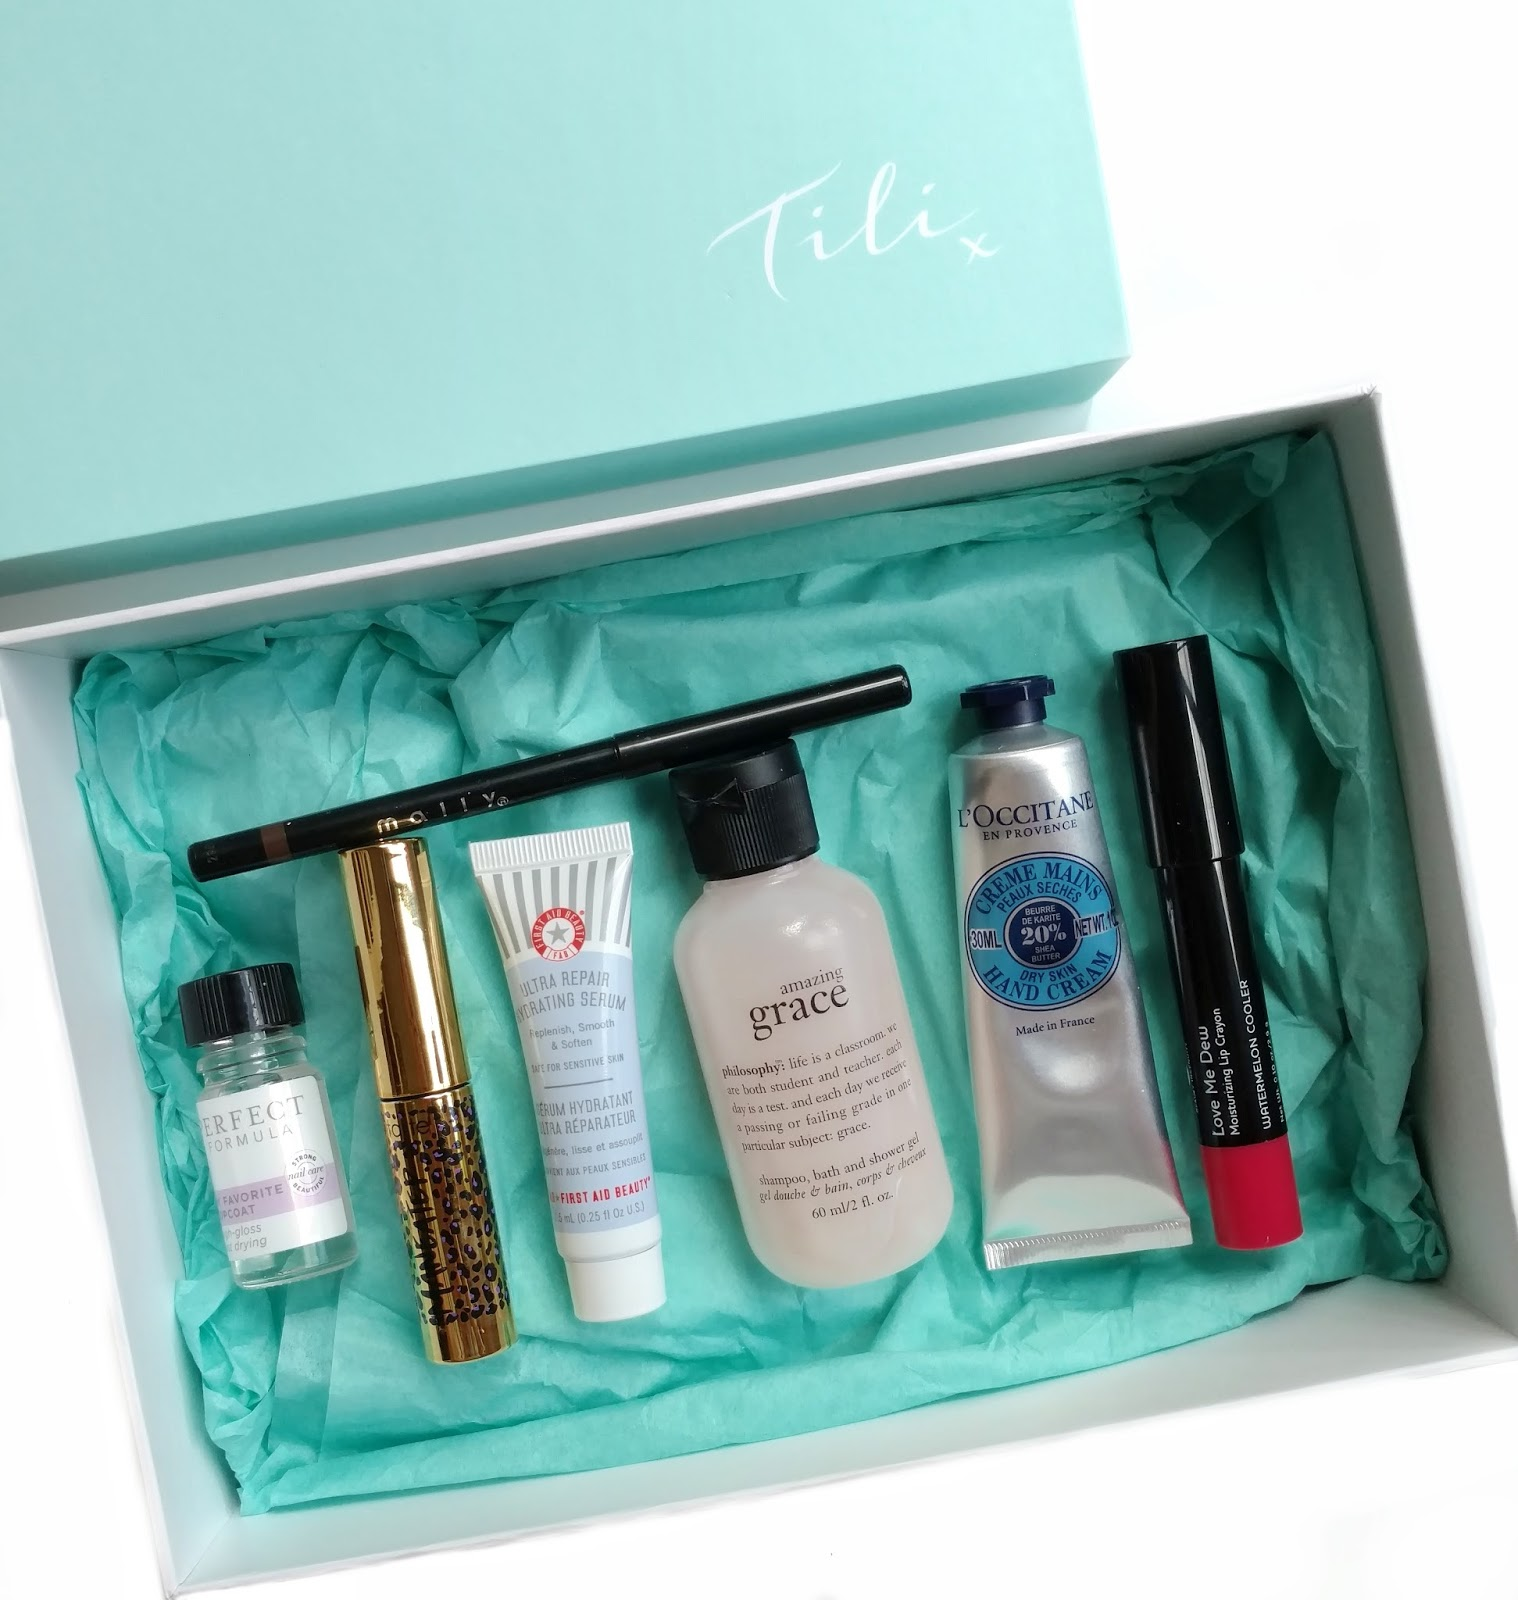 qvc TILI box unboxing